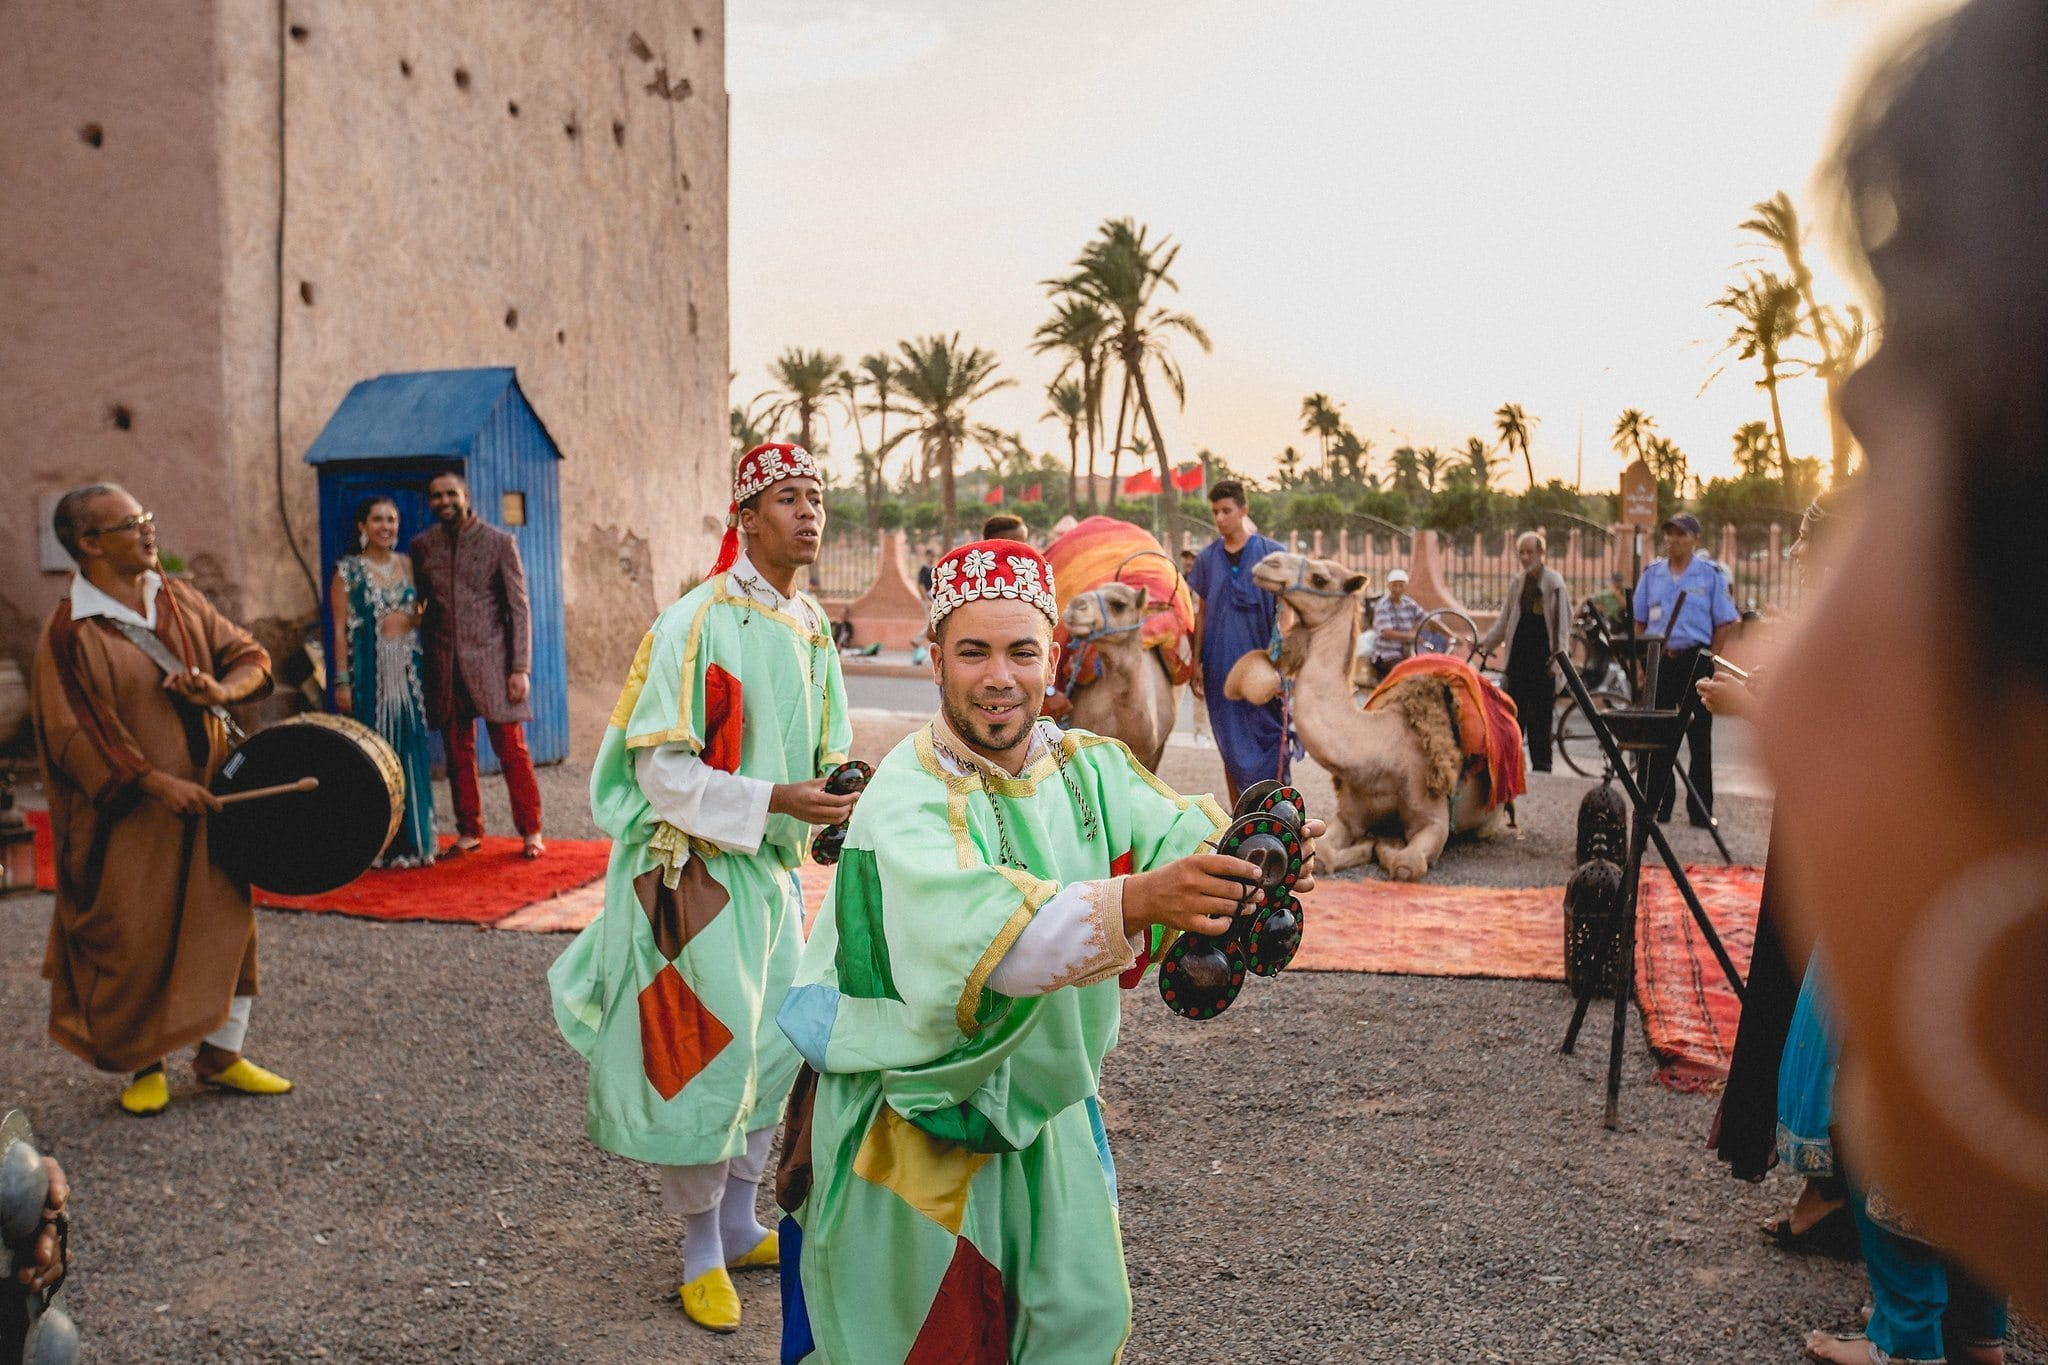 The Moroccan musicians dance and play instruments as the guests wait excitedly for the bride and groom.